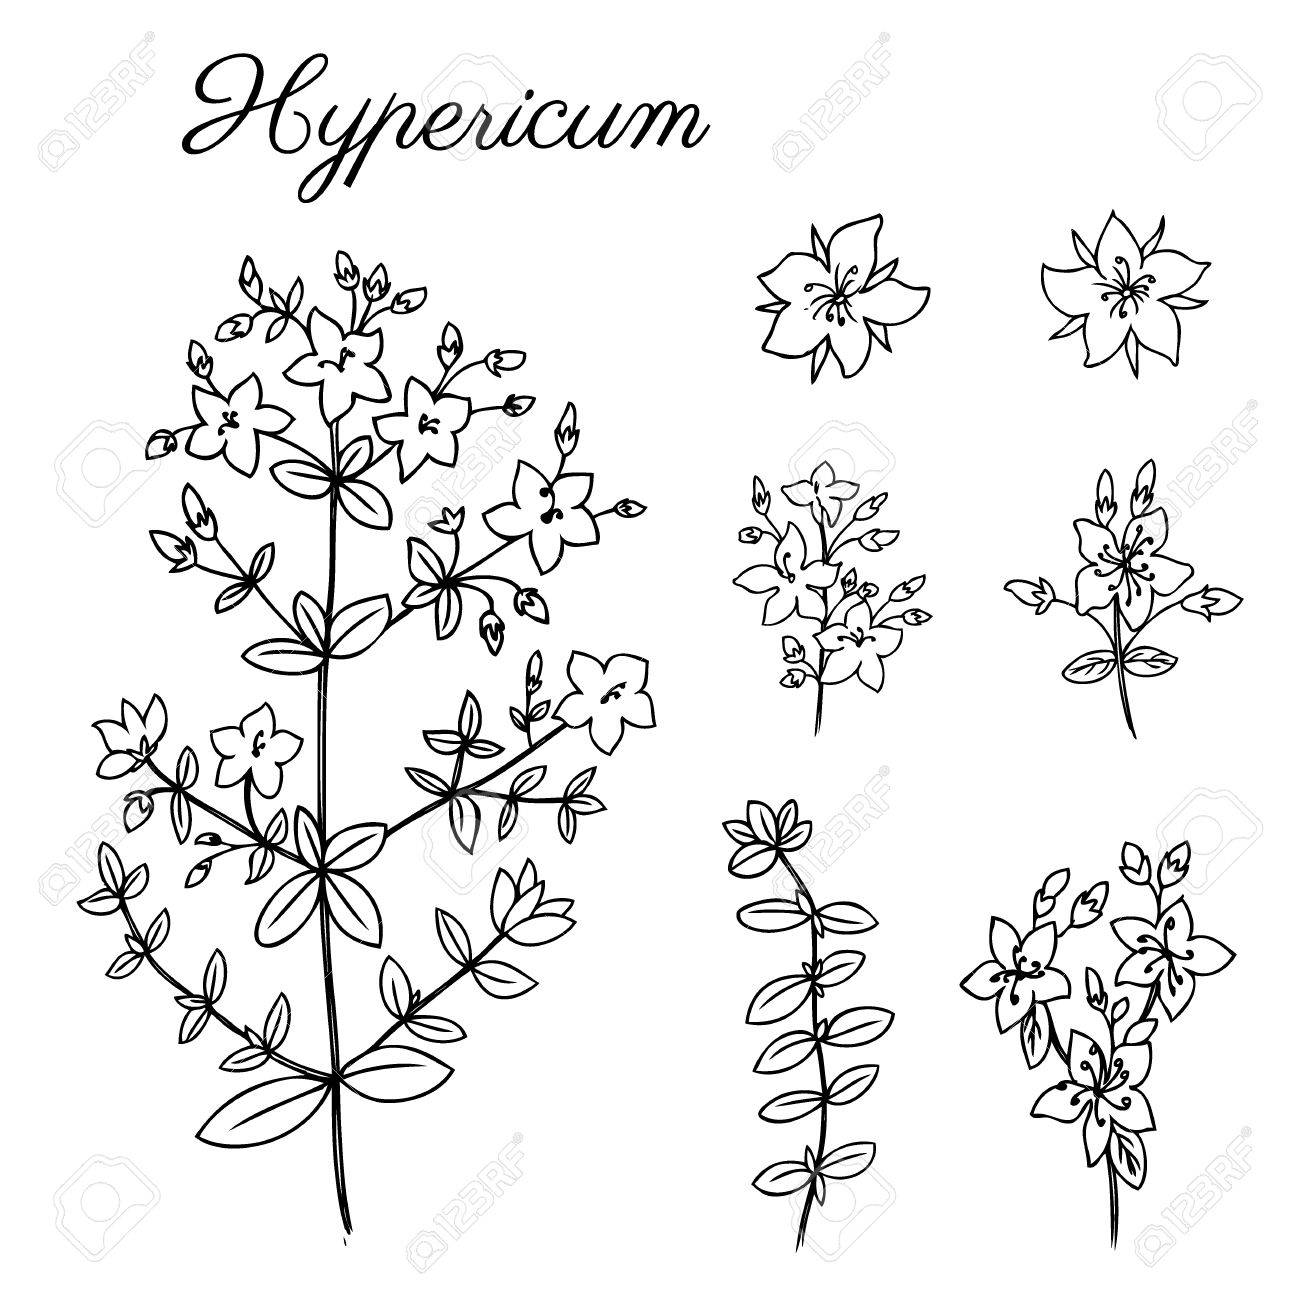 1300x1300 Hypericum, St. Johns Wort Or Hartheu Branch Vector Sketch Hand